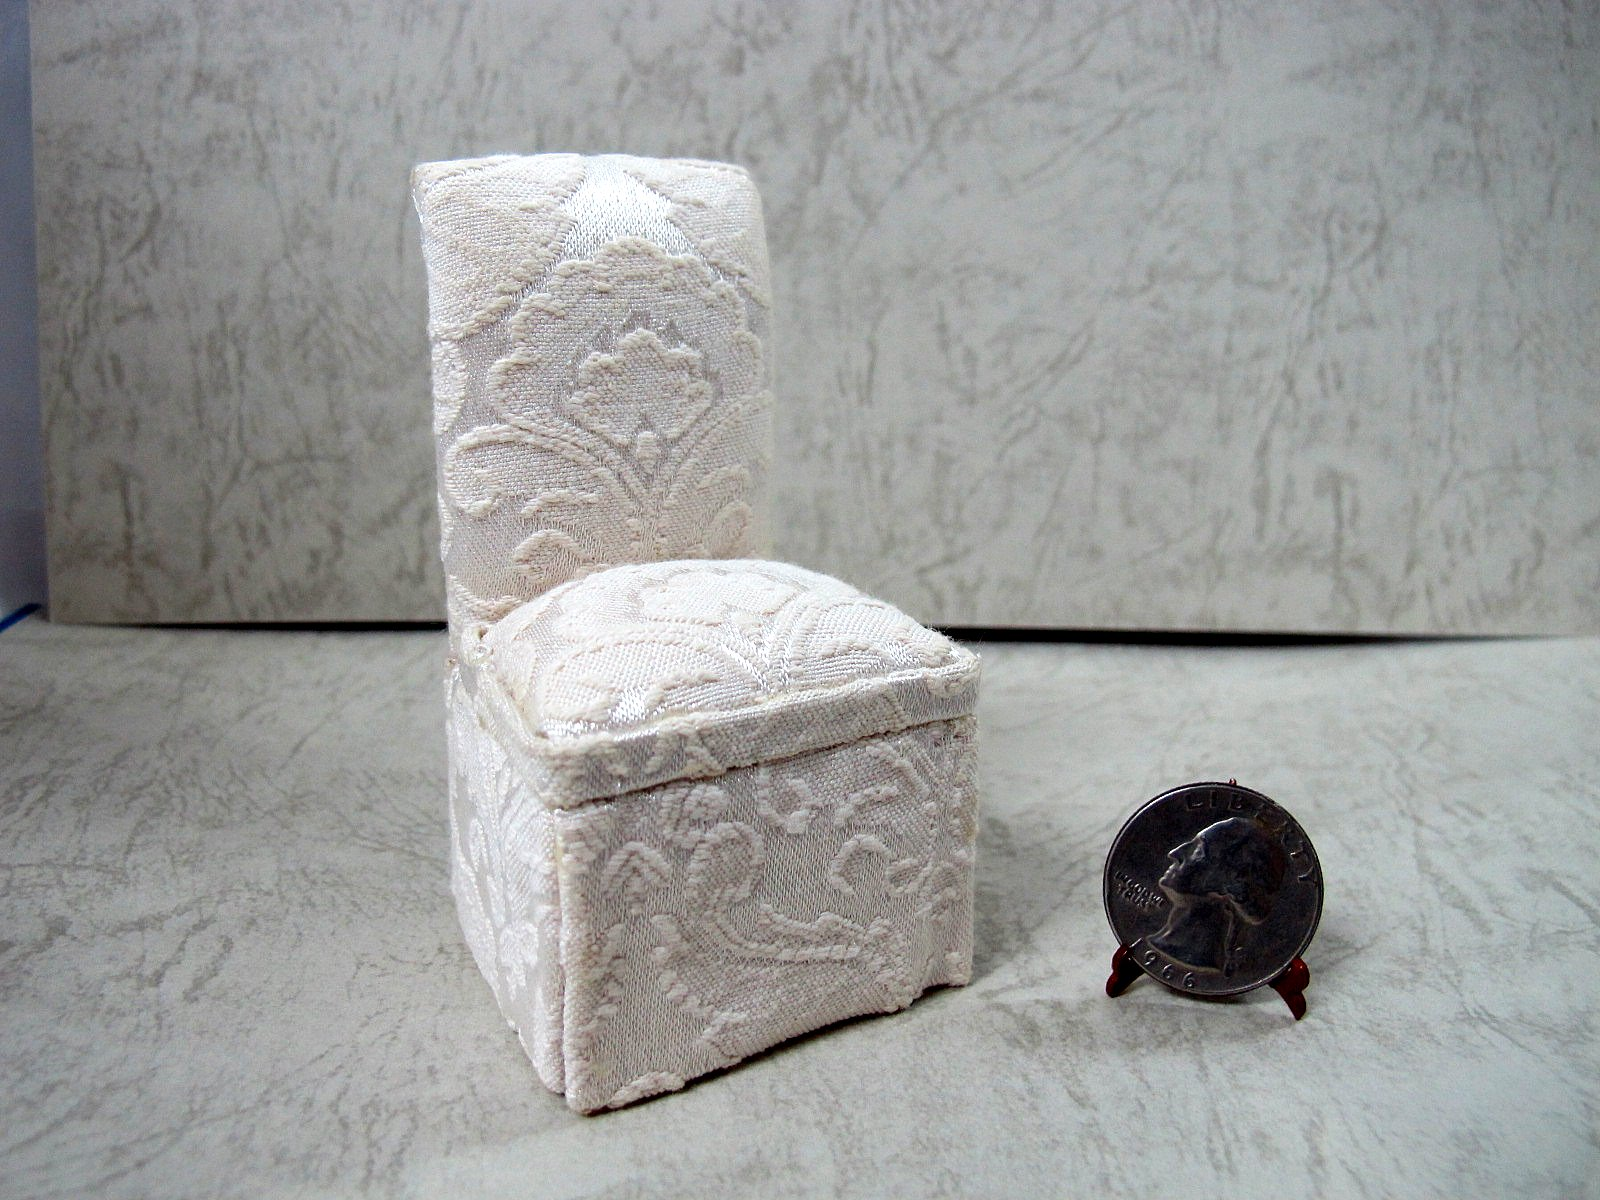 Miniature Polyester Jacquard Chair for 1/12th Scale doll house